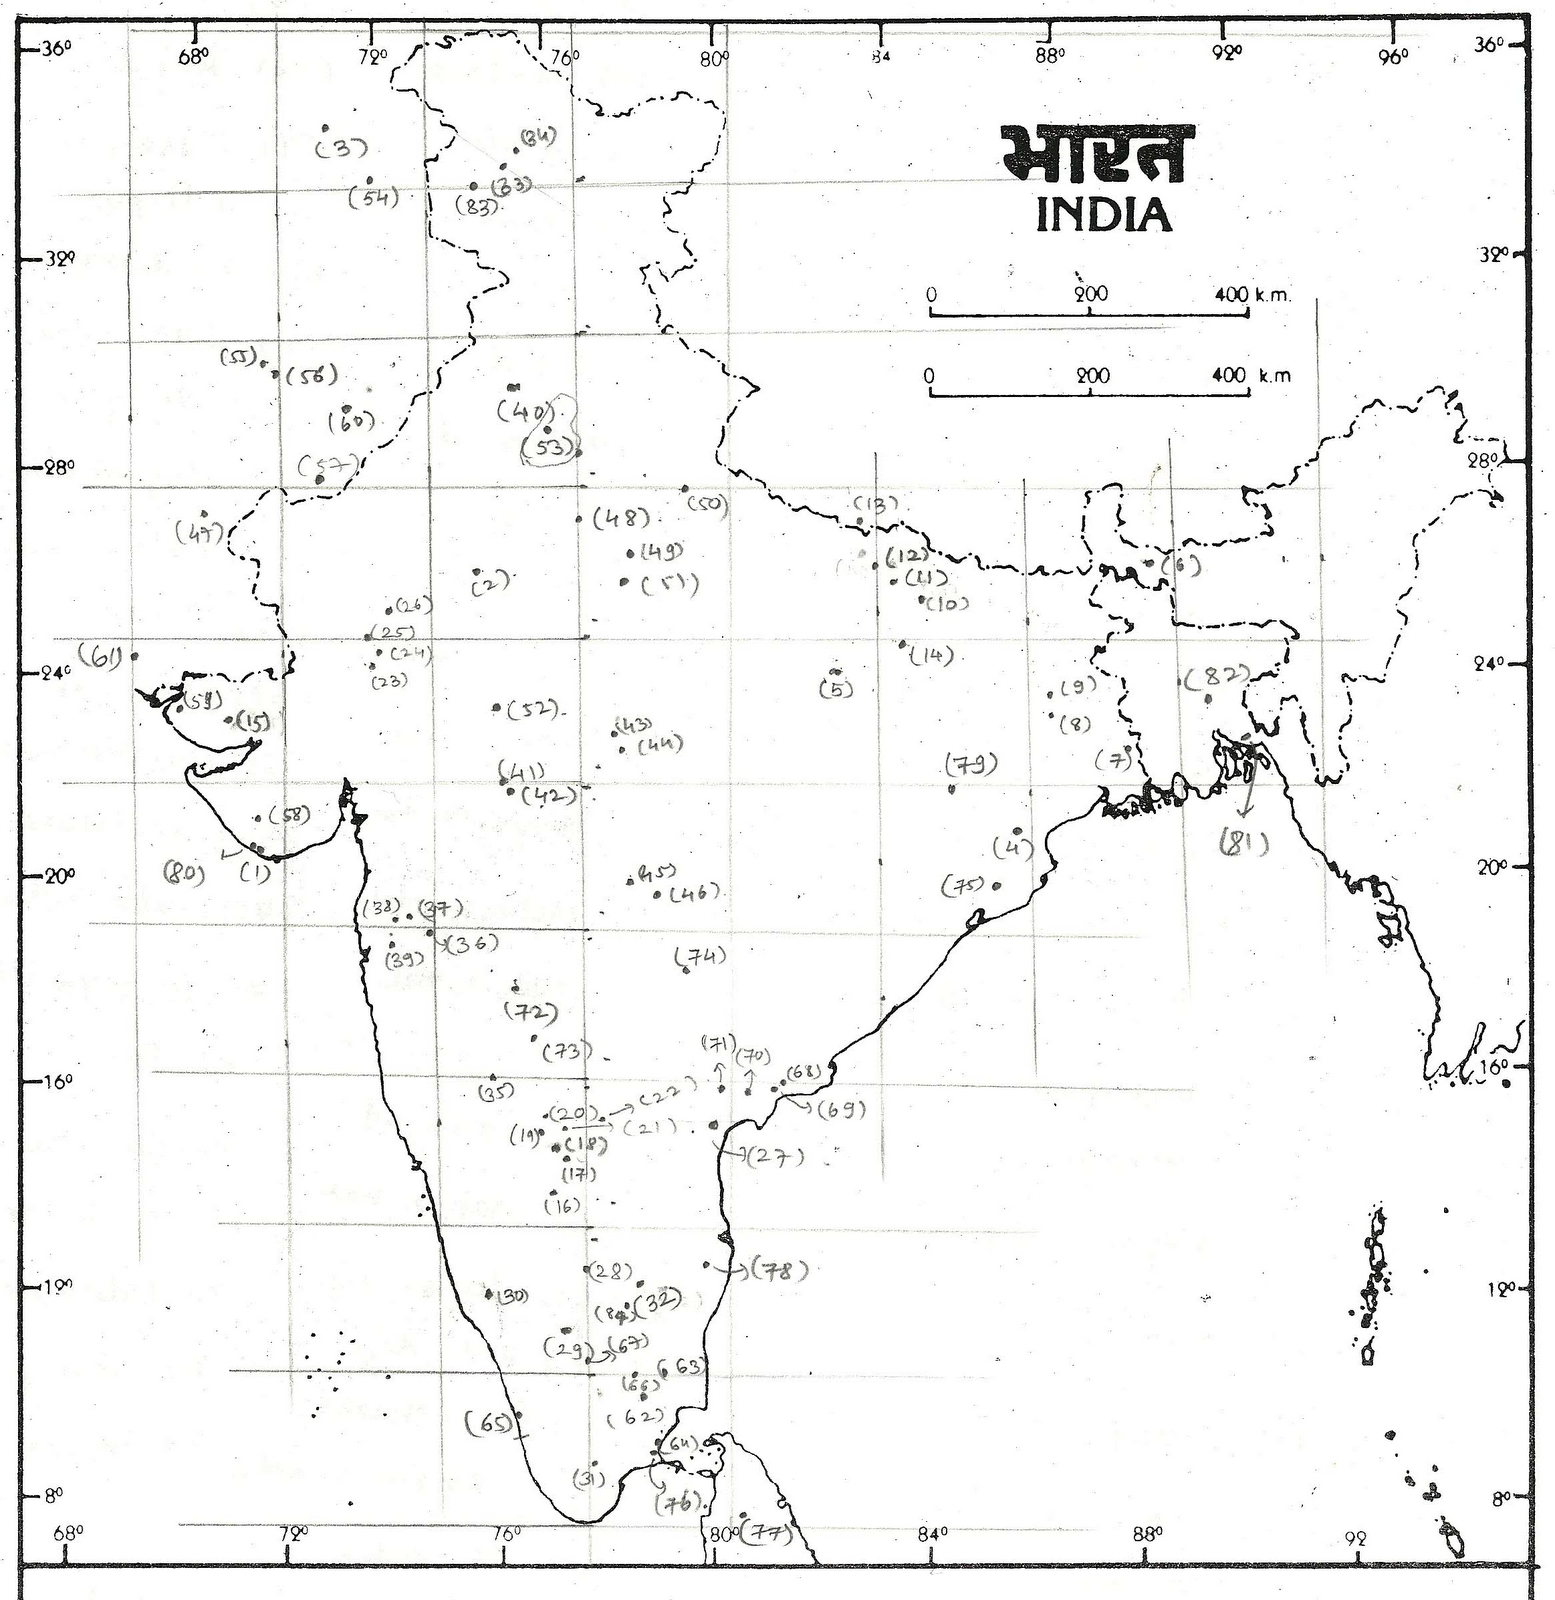 Beginners Guide To UPSC Civil Services Examination History - Location on map with latitude and longitude